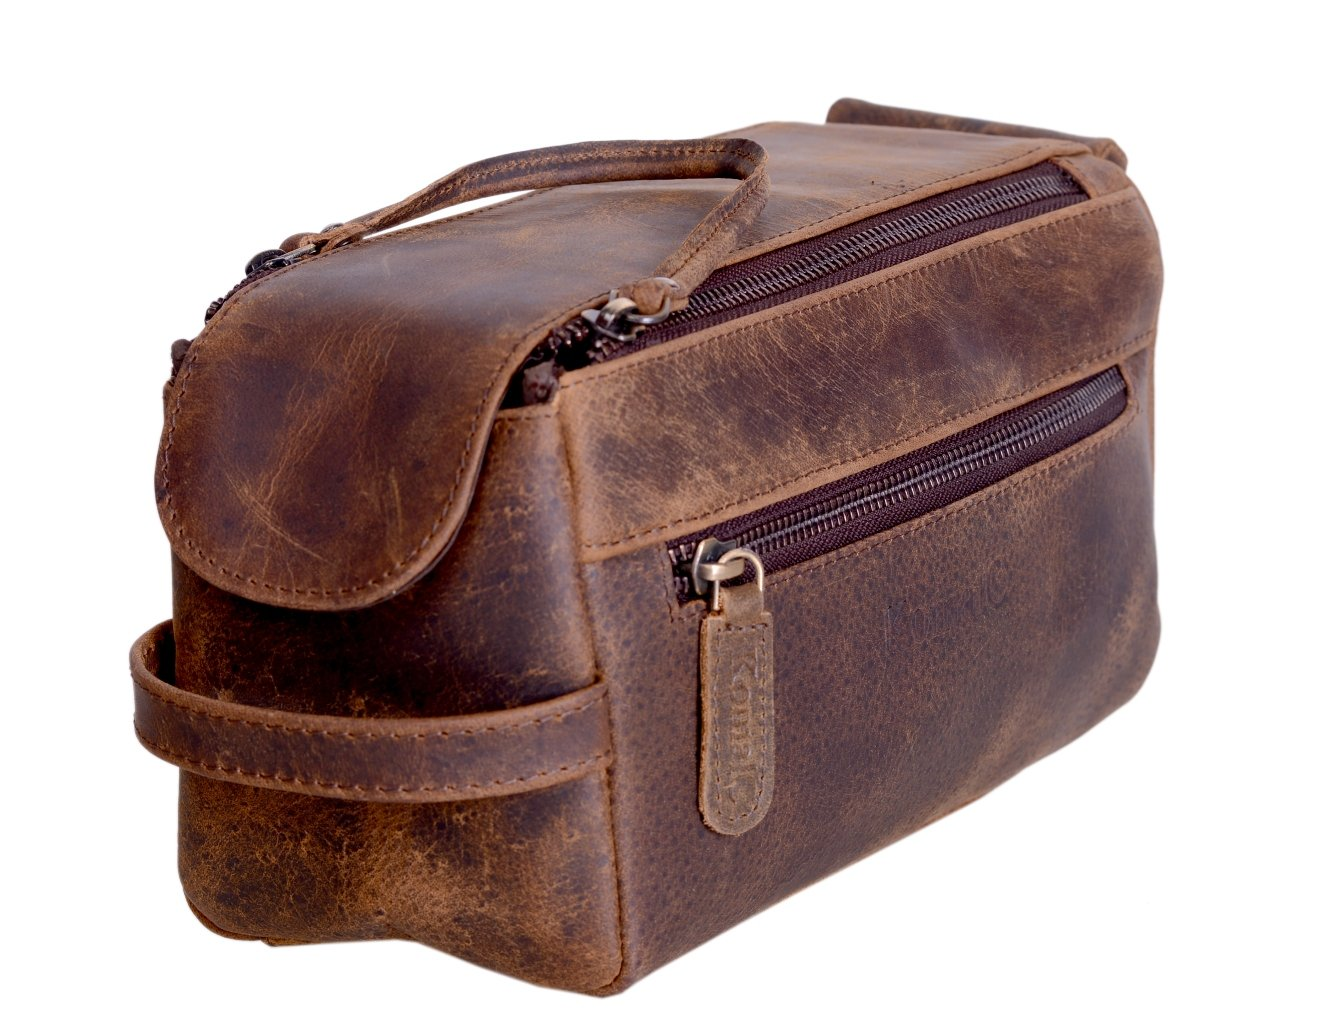 97572ef6581a KOMALC Genuine Buffalo Leather Unisex Toiletry Bag Travel Dopp Kit